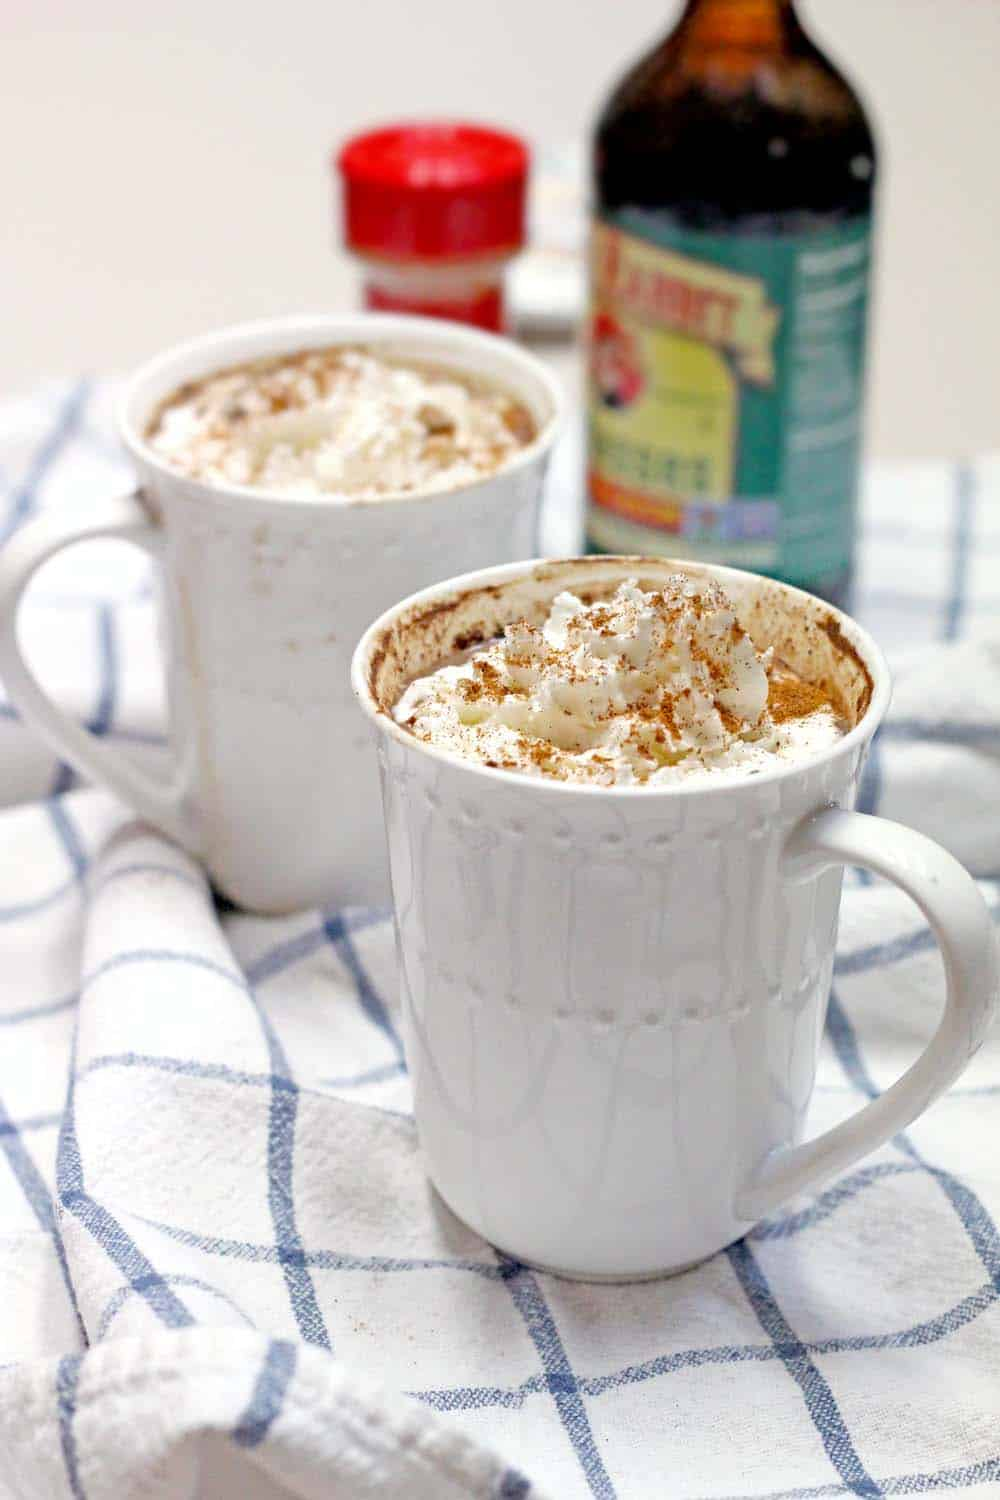 Spicy Mexican Maple and Molasses Hot Chocolate   This hot chocolate has no refined sugar and is smooth, warm, slightly spicy, and decadent with a pinch of cinnamon and cayenne pepper. Sweetened with molasses and maple syrup. SO COZY!